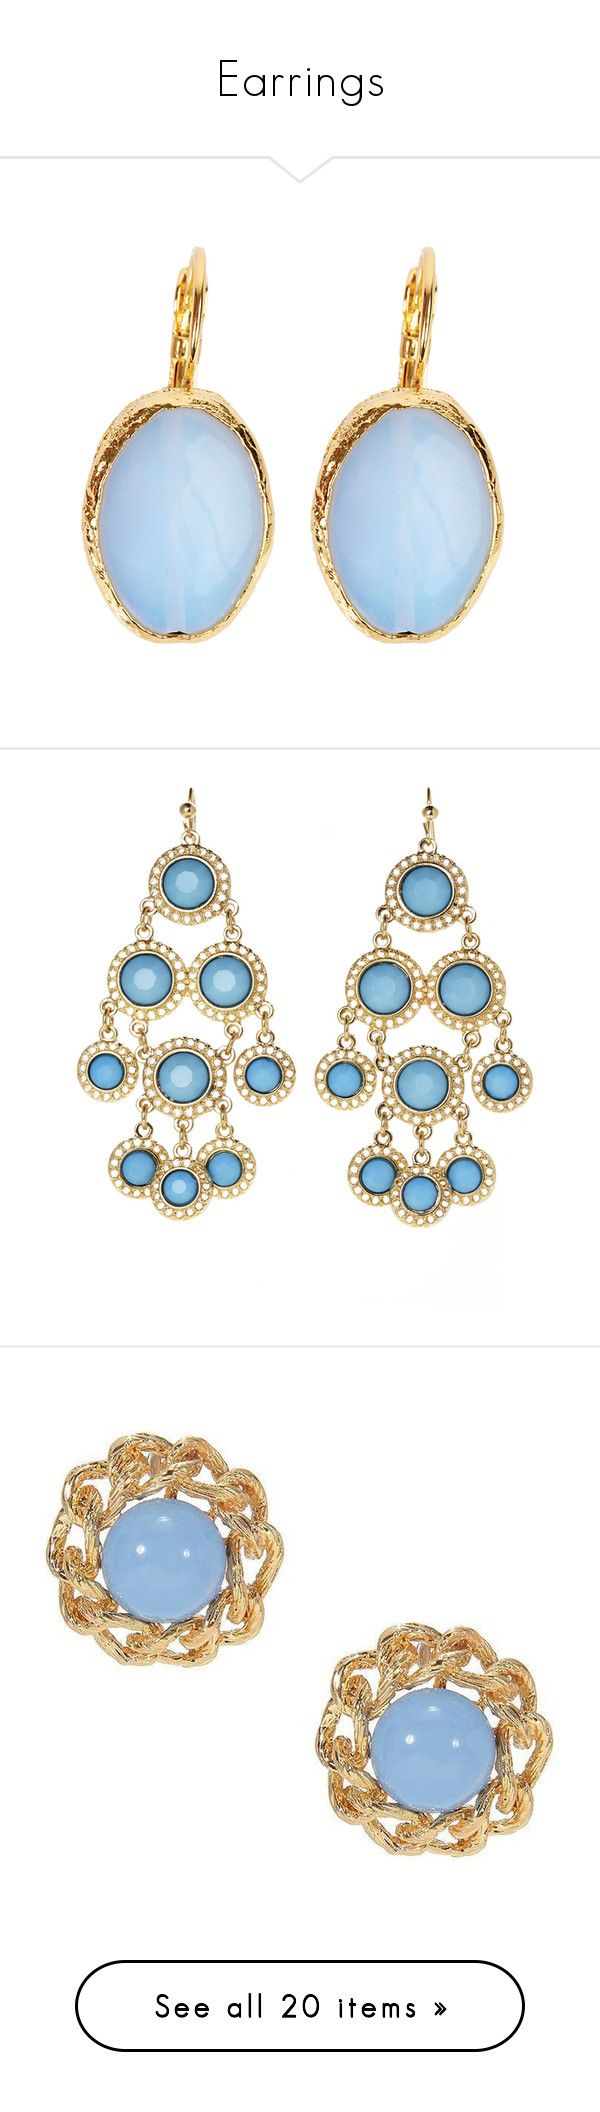 """Earrings"" by jmcwilliams275 ❤ liked on Polyvore featuring jewelry, earrings, nakit, moonstone earrings, brass jewelry, blue moonstone jewelry, blue earrings, gold plated jewellery, fish hook jewelry and chandelier jewelry"